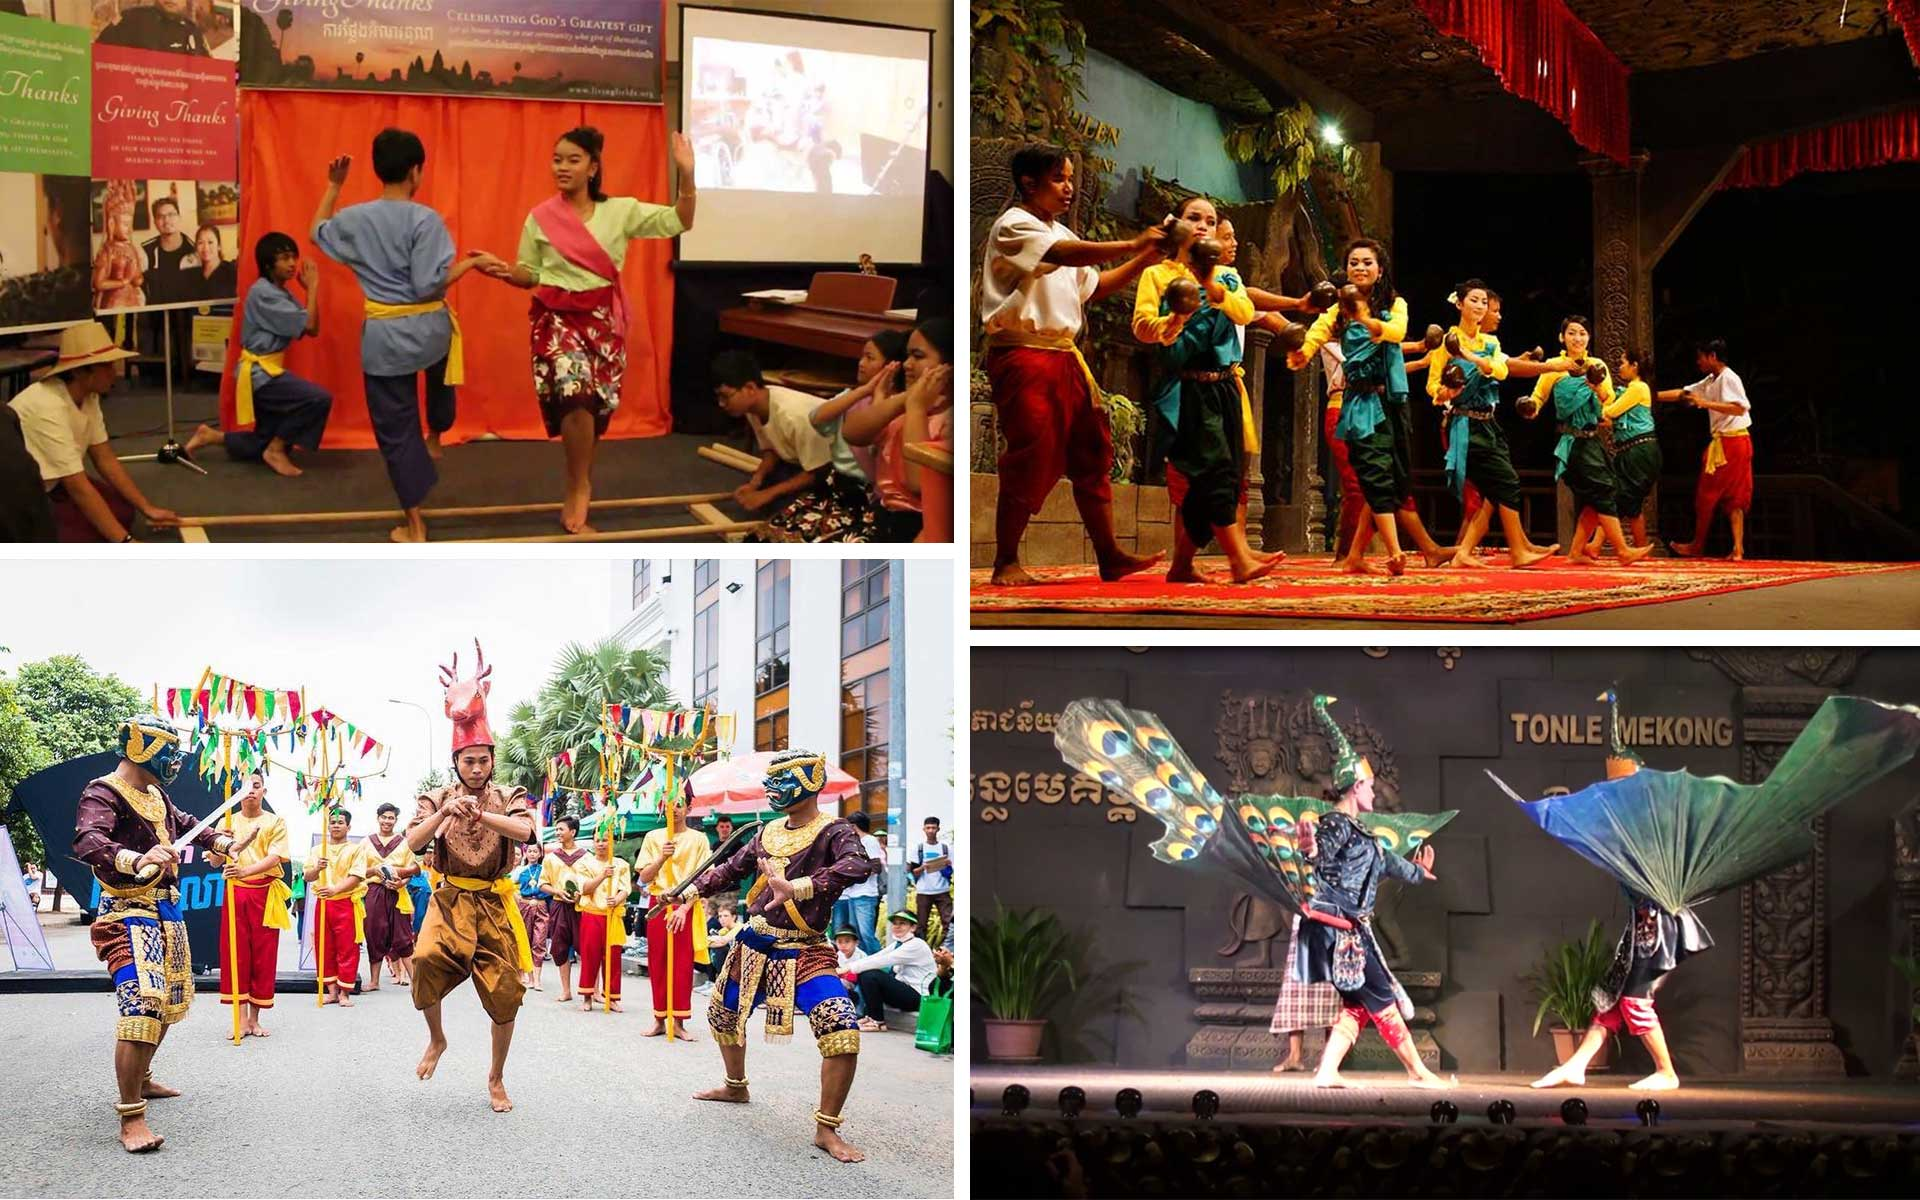 Cambodian Folk Dances highlight various cultural traditions and ethnic groups of Cambodia.